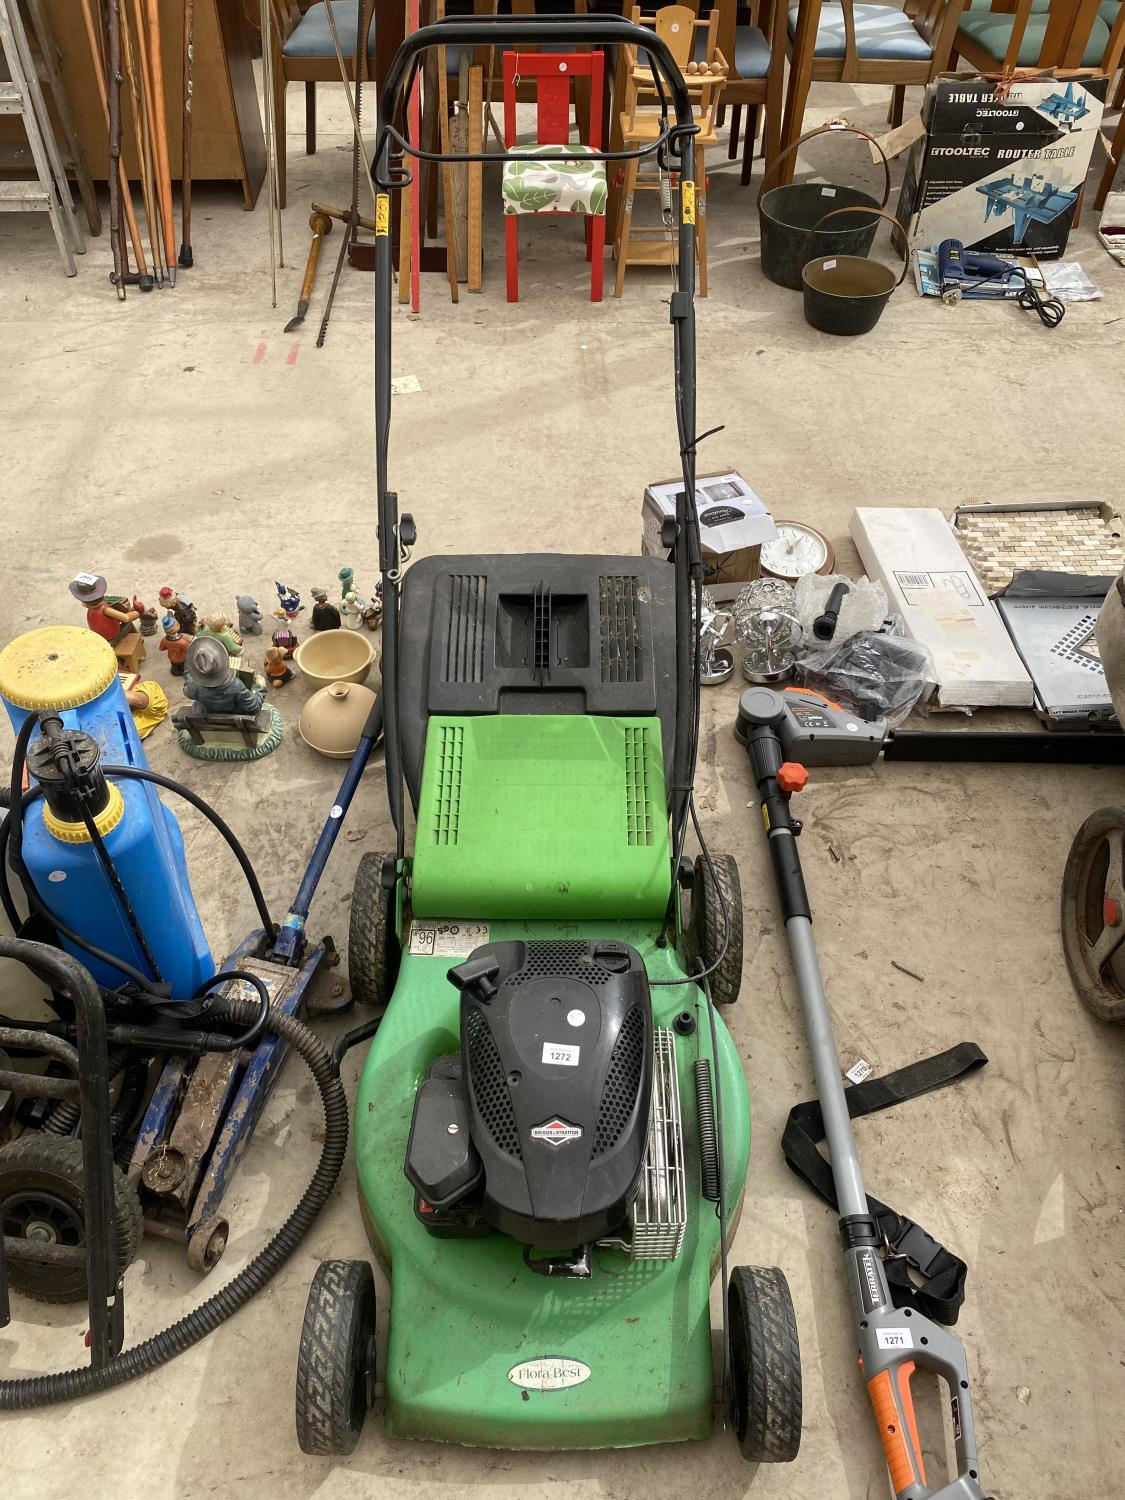 A FLORA BEST LAWN MOWER WITH GRASS BOX AND BRIGGS AND STRATTON PETROL ENGINE